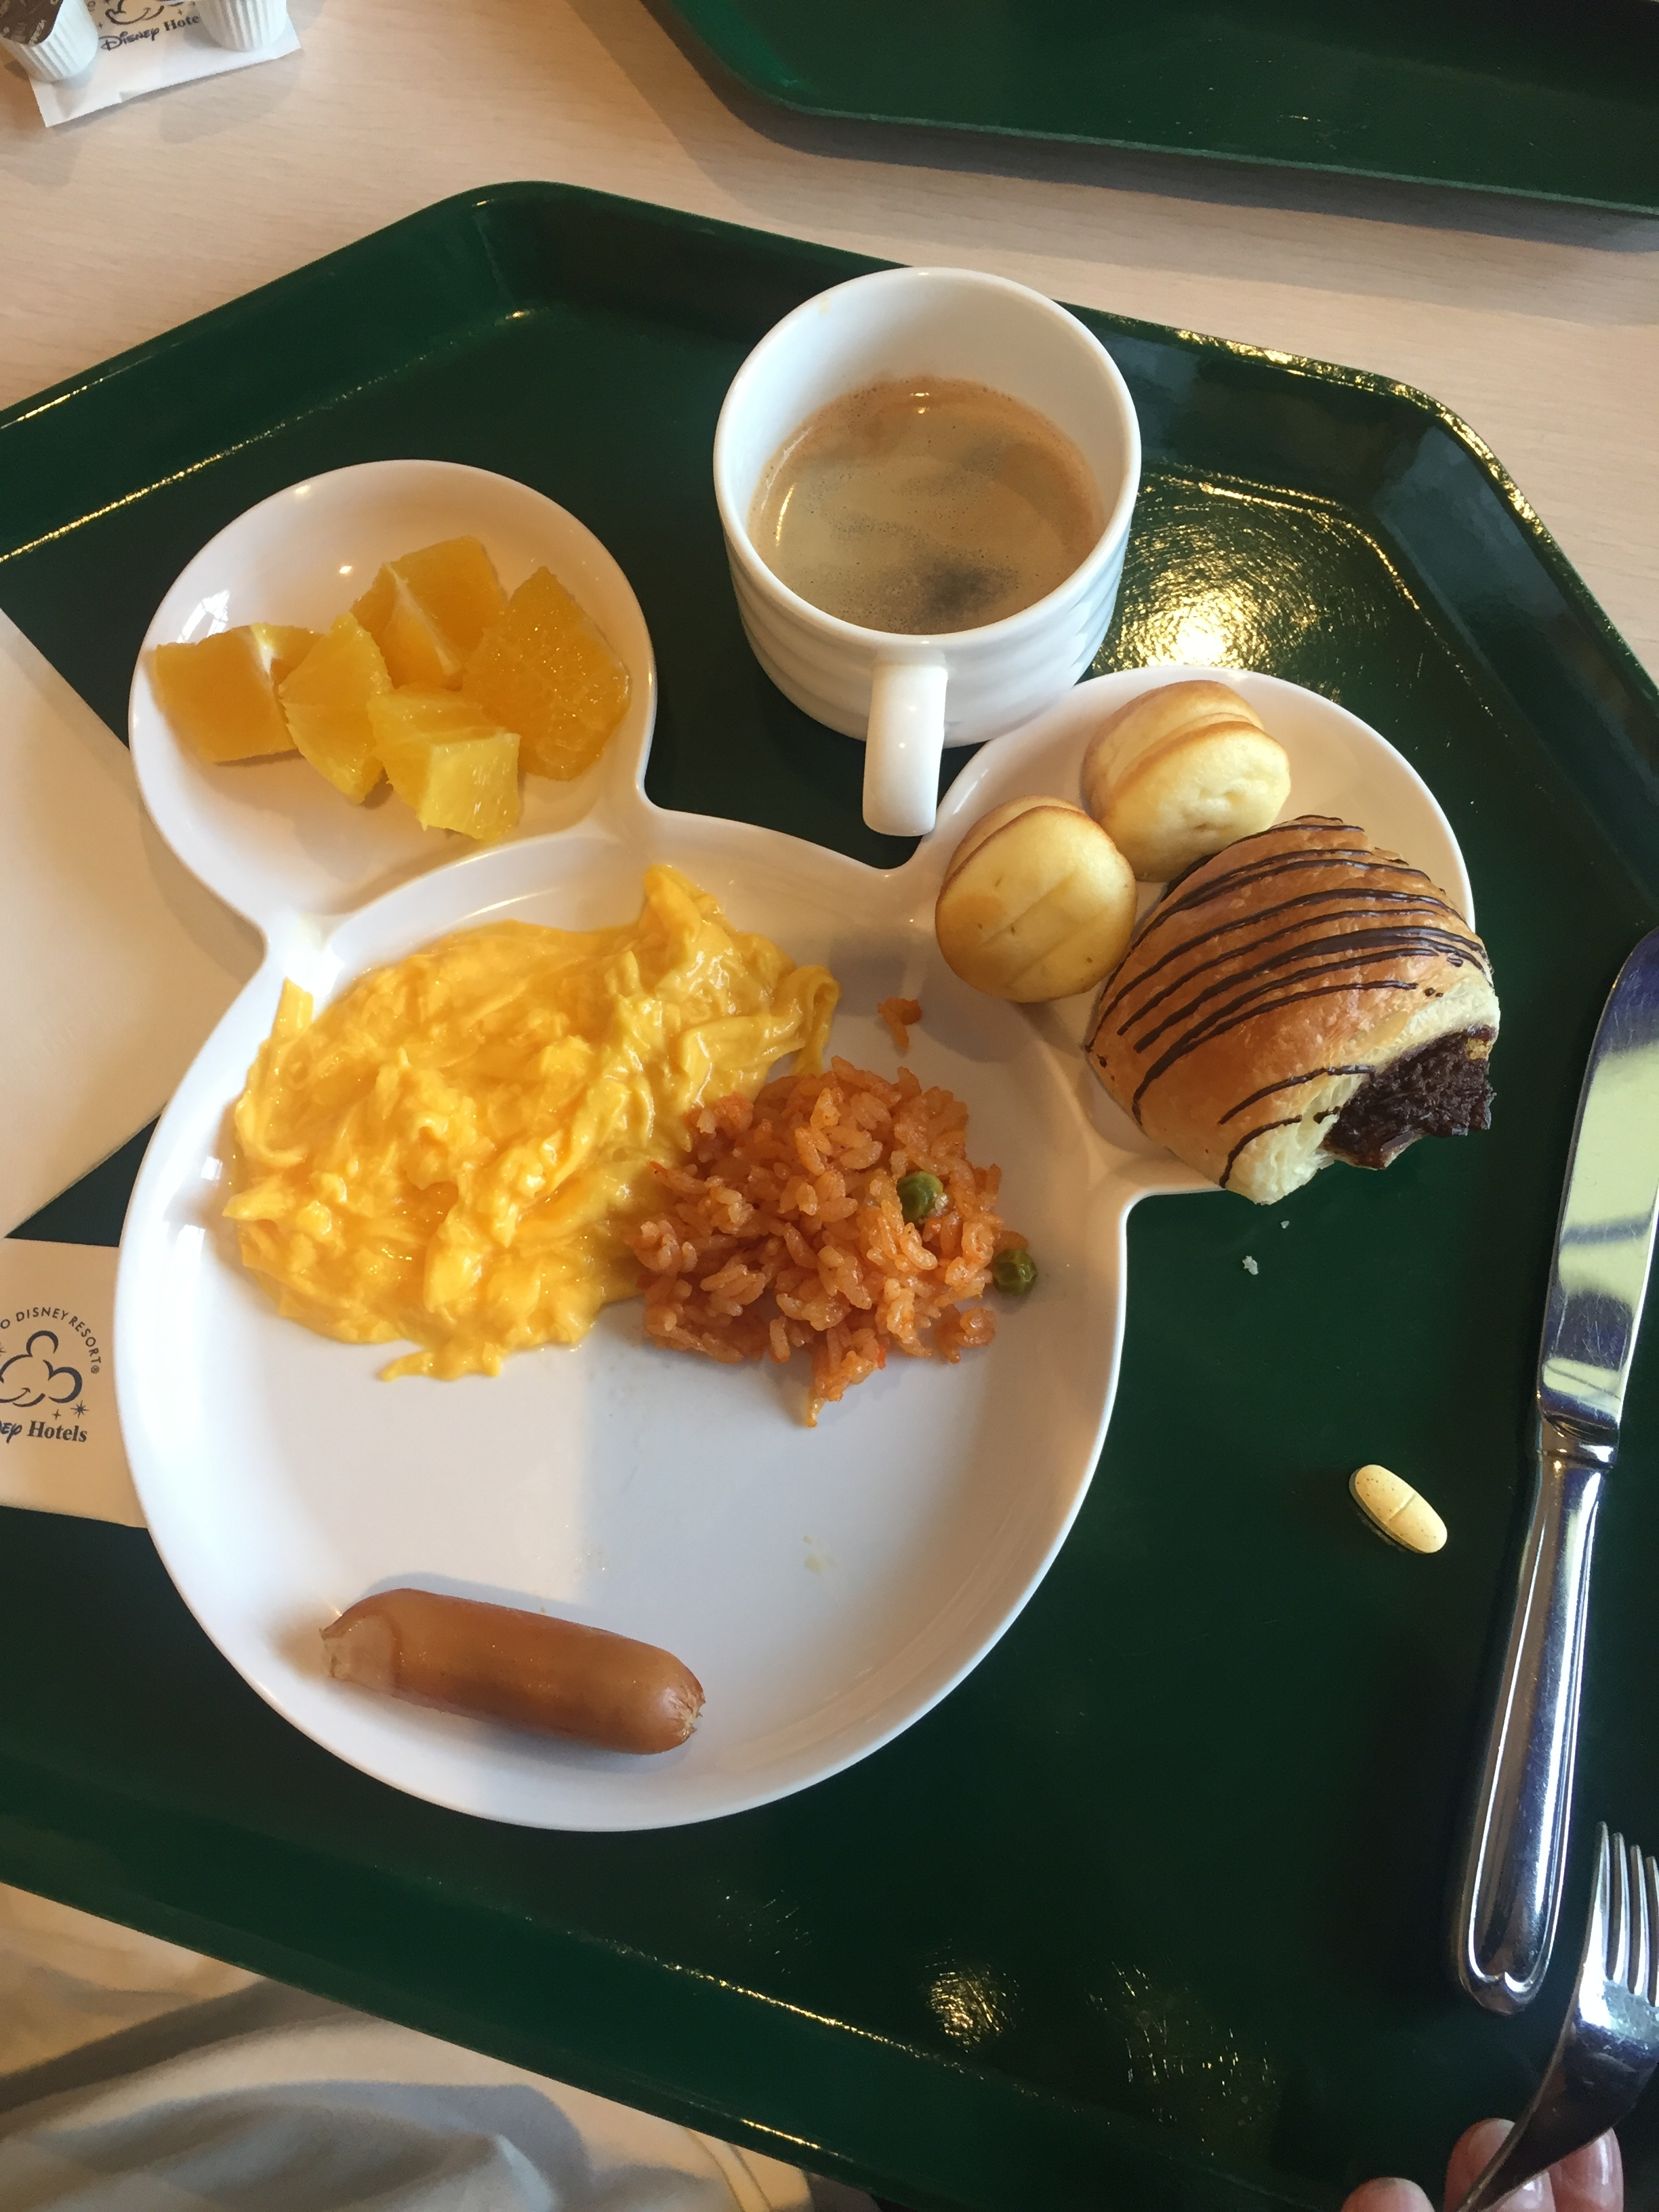 Disney Celebration Hotel offered both a traditional Japanese breakfast (mostly fish, salads, rice and fruit) in addition to, a Western breakfast (loose scrambled eggs, pastries, etc.).